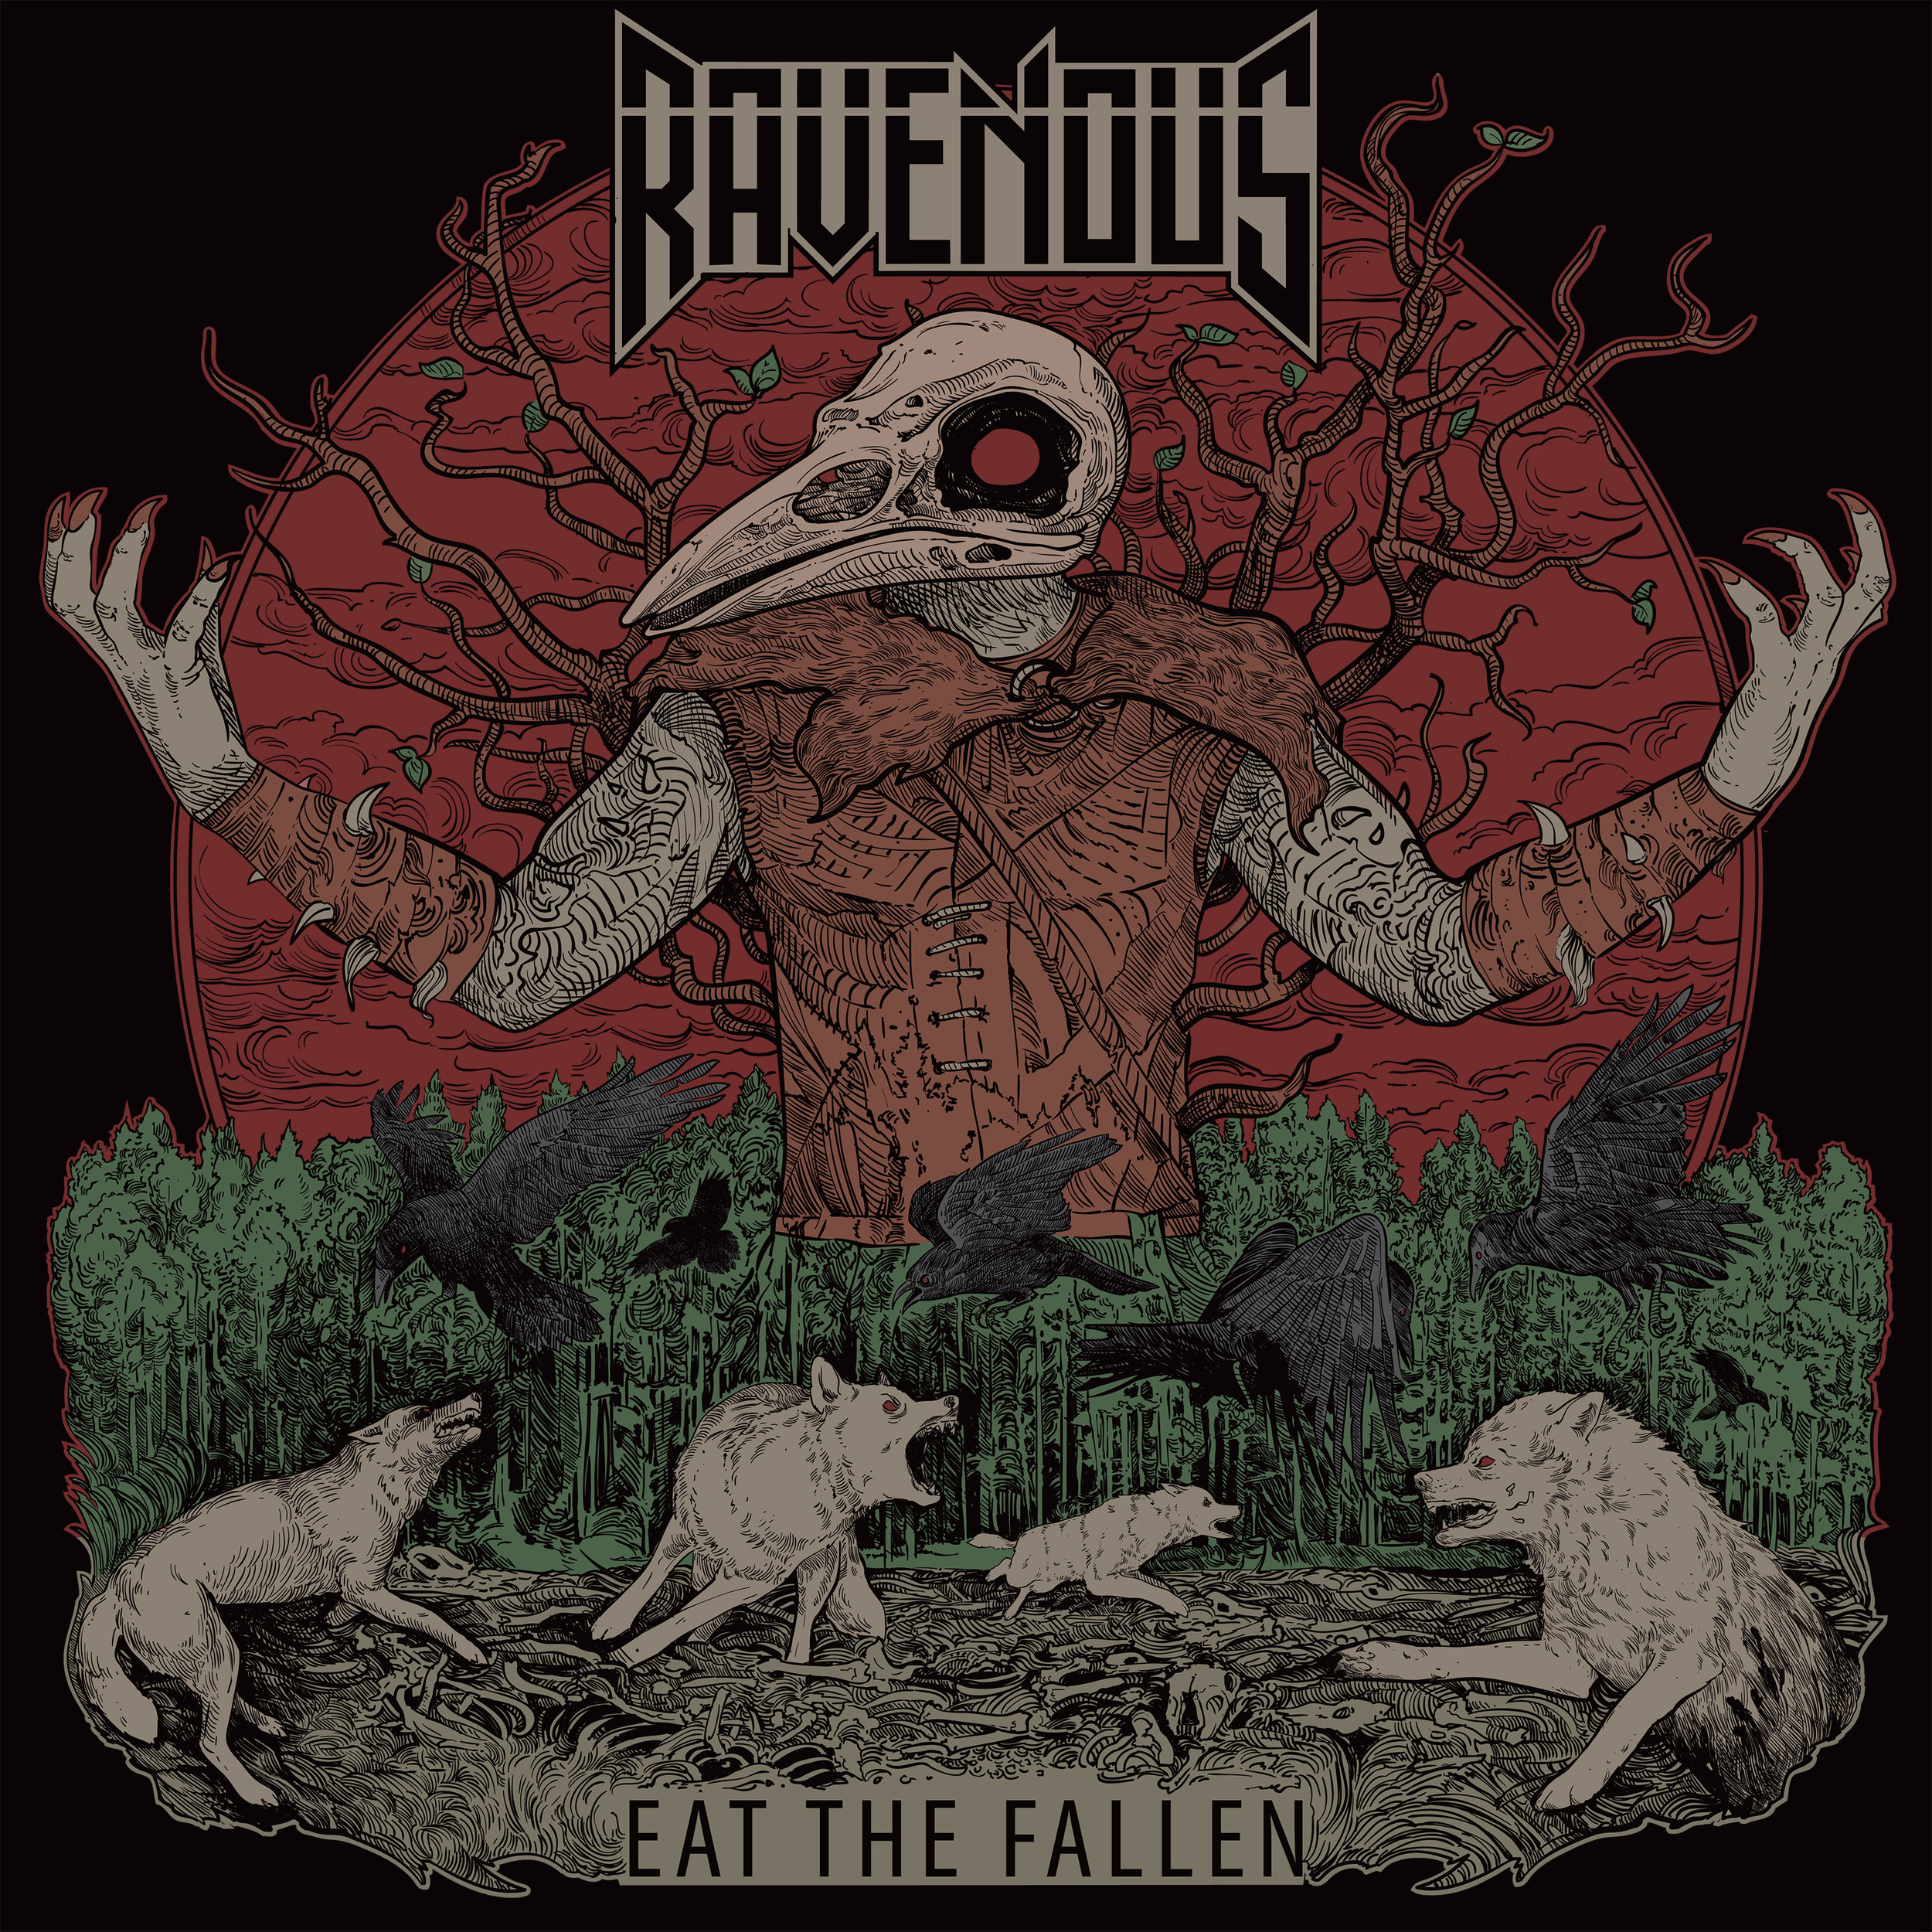 CDBABY FINALIZED Ravenous_cover_color 2_red sun.jpg